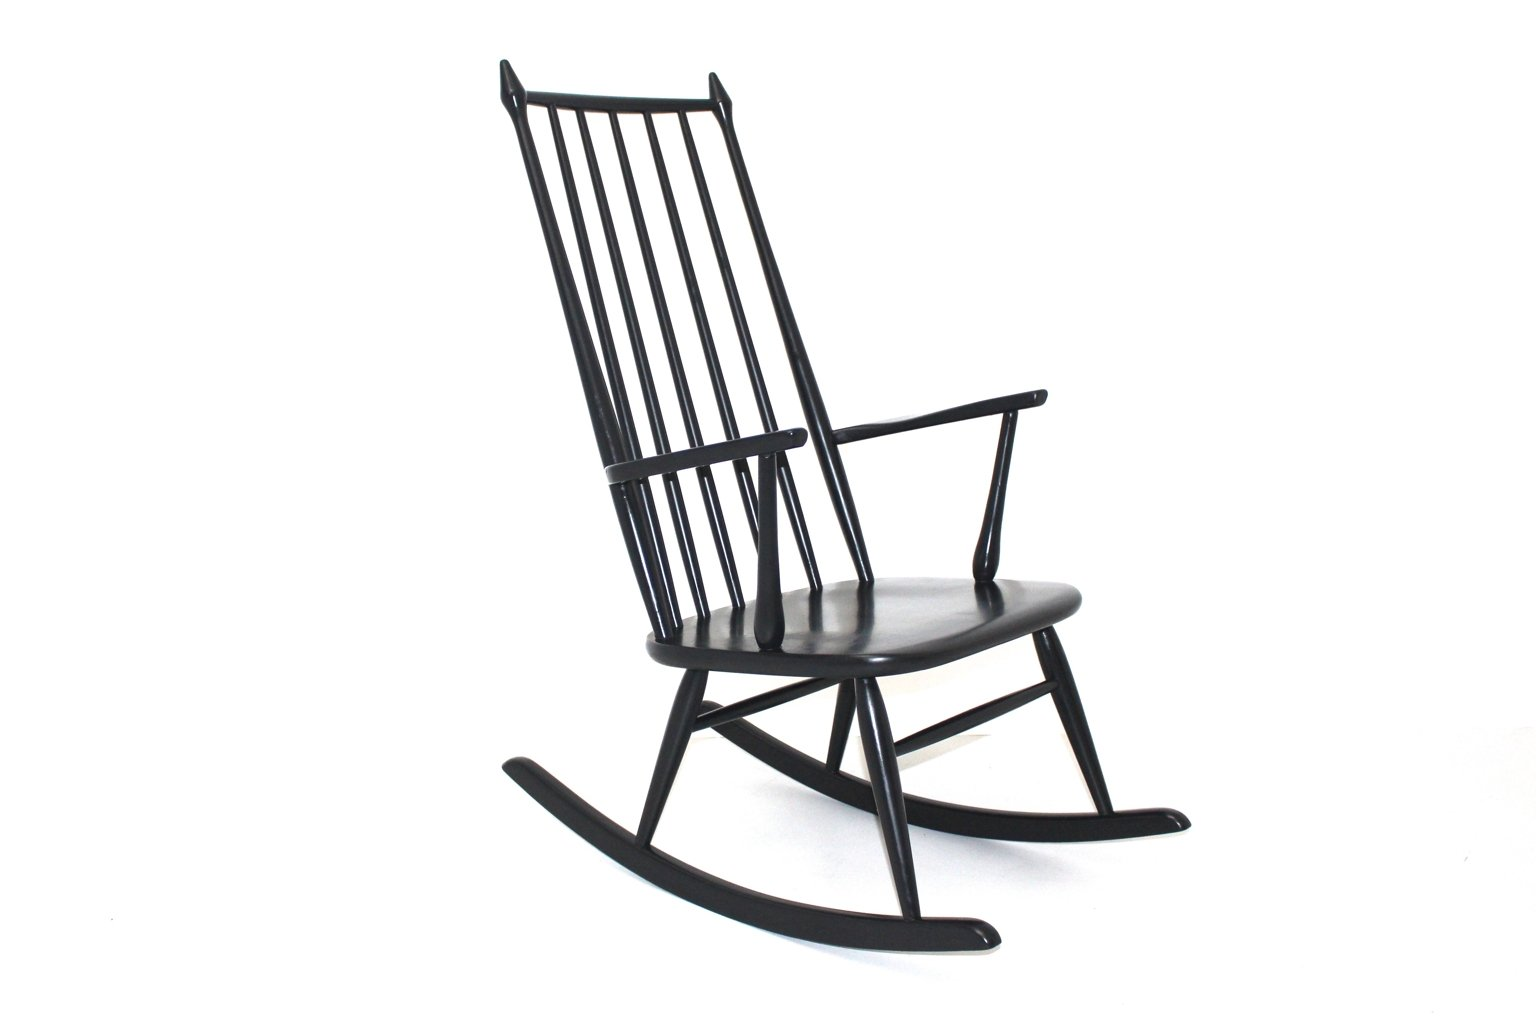 Swedish Rocking Chair Scandinavian Black Rocking Chair 1960s For Sale At Pamono